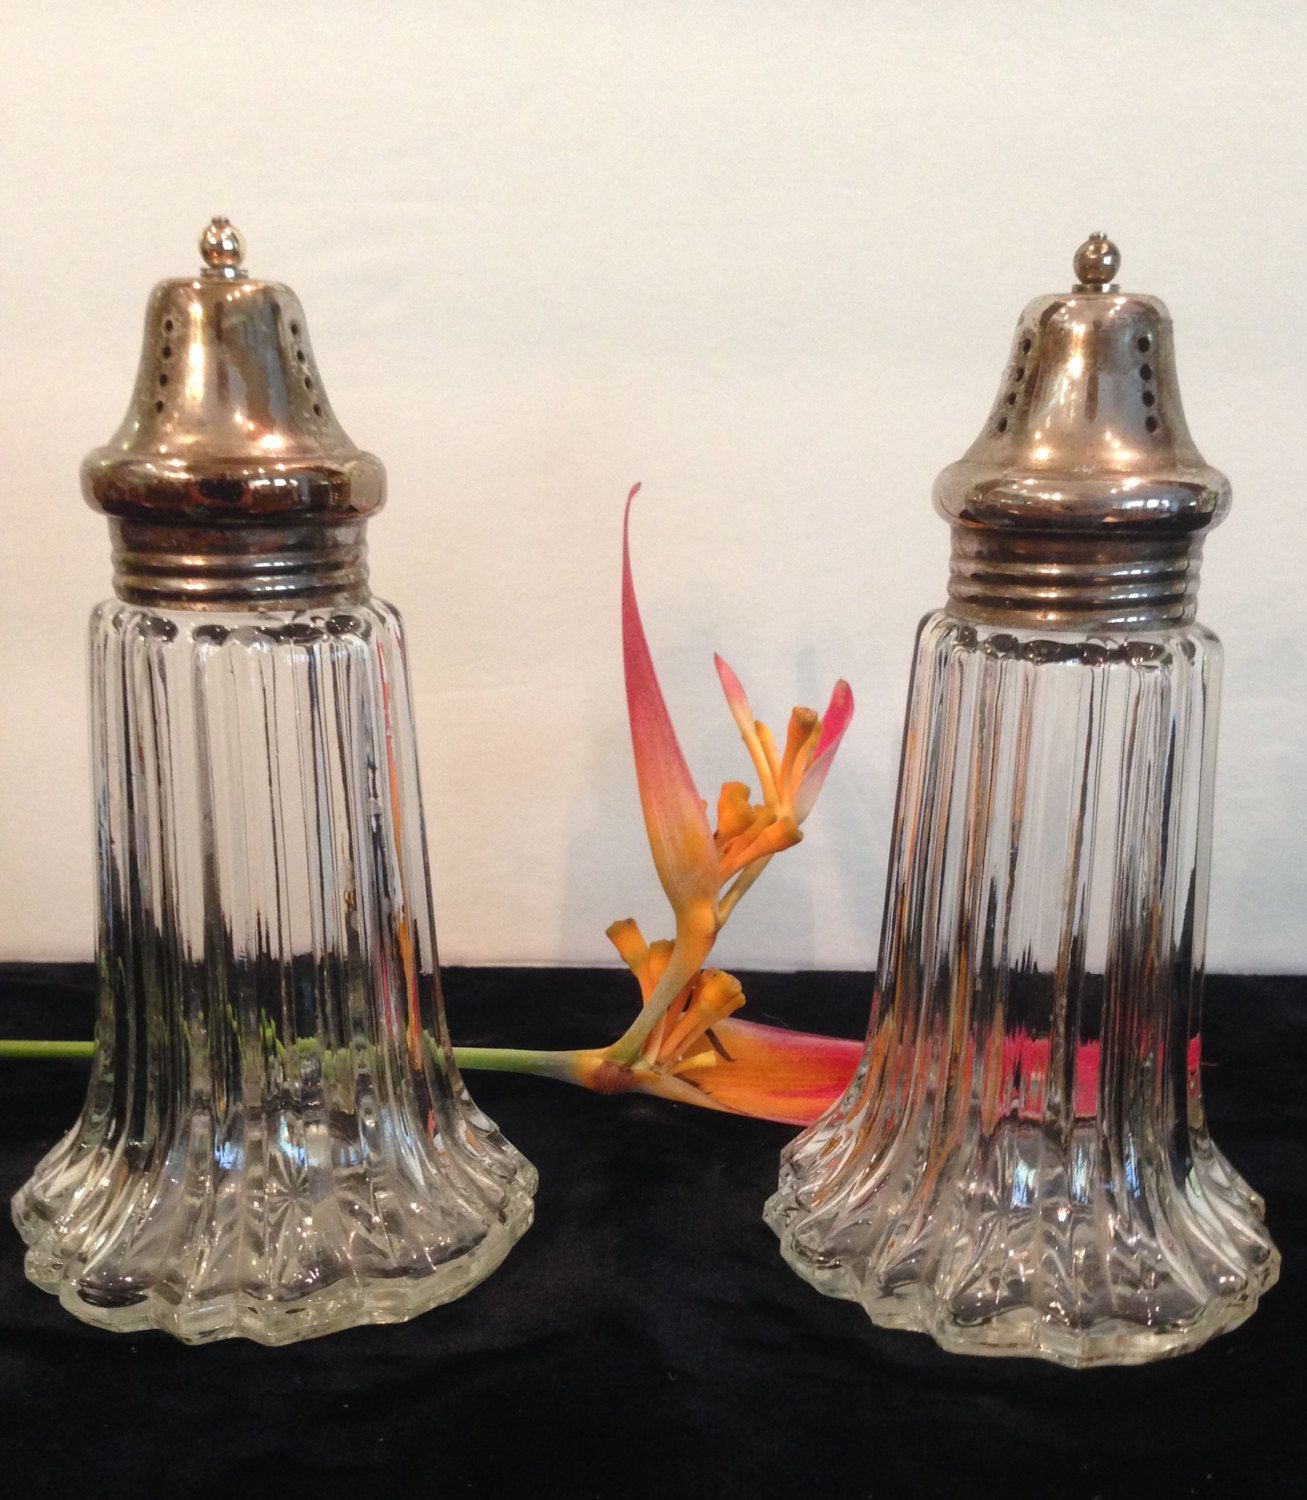 Vintage Leonard Salt and Pepper Shakers, 5 3/4 Inches Tall